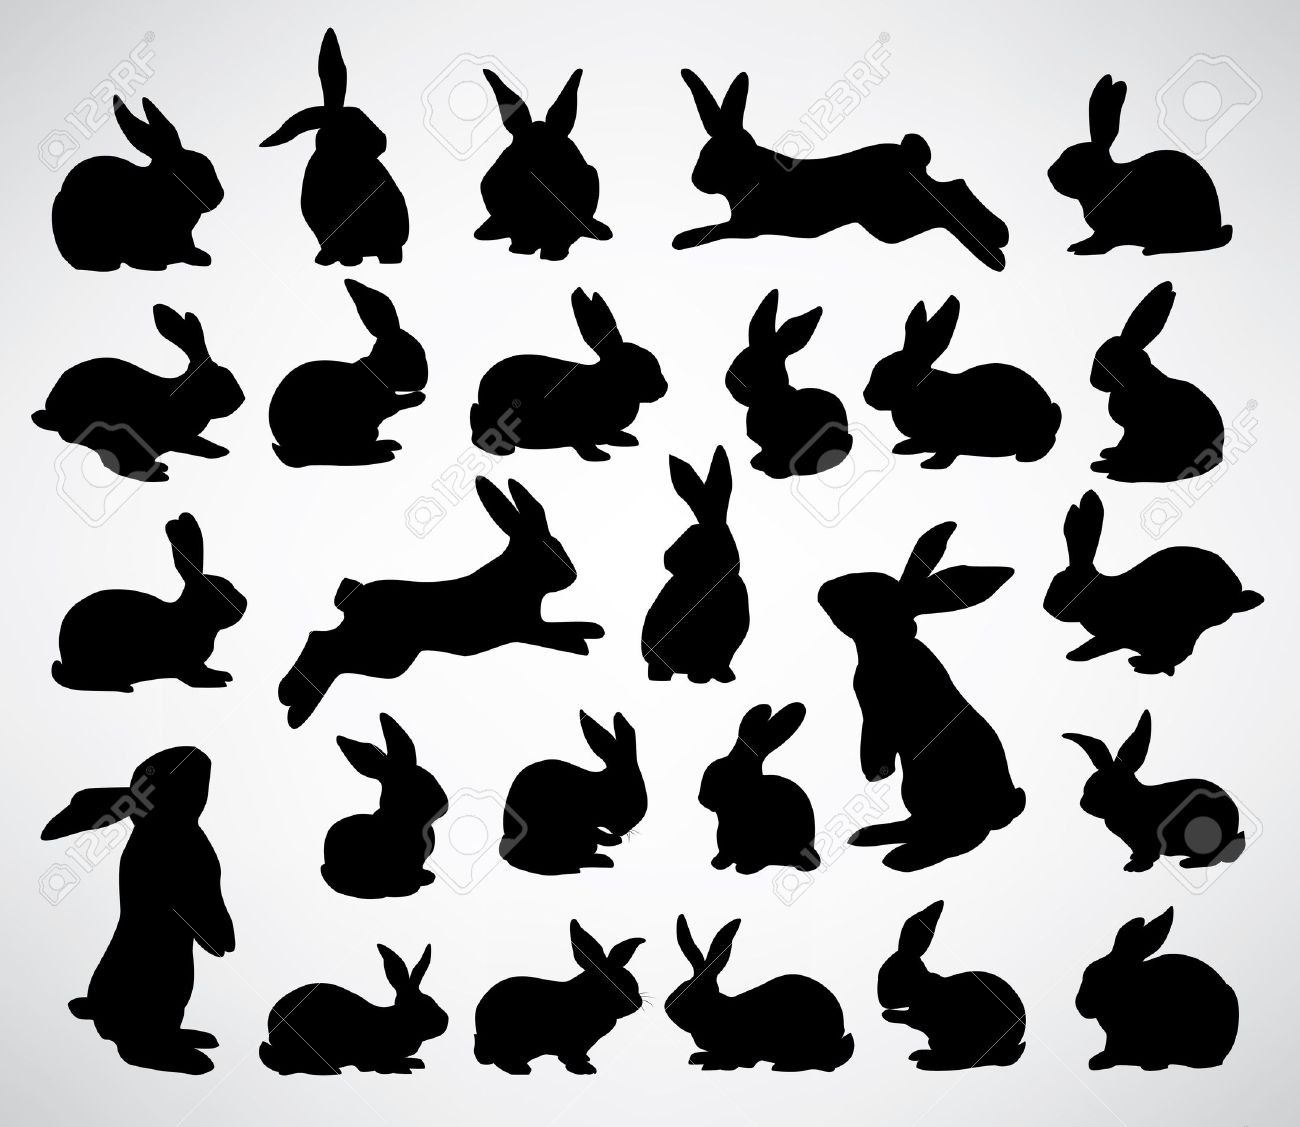 9,134 Rabbit Silhouette Stock Vector Illustration And Royalty Free.